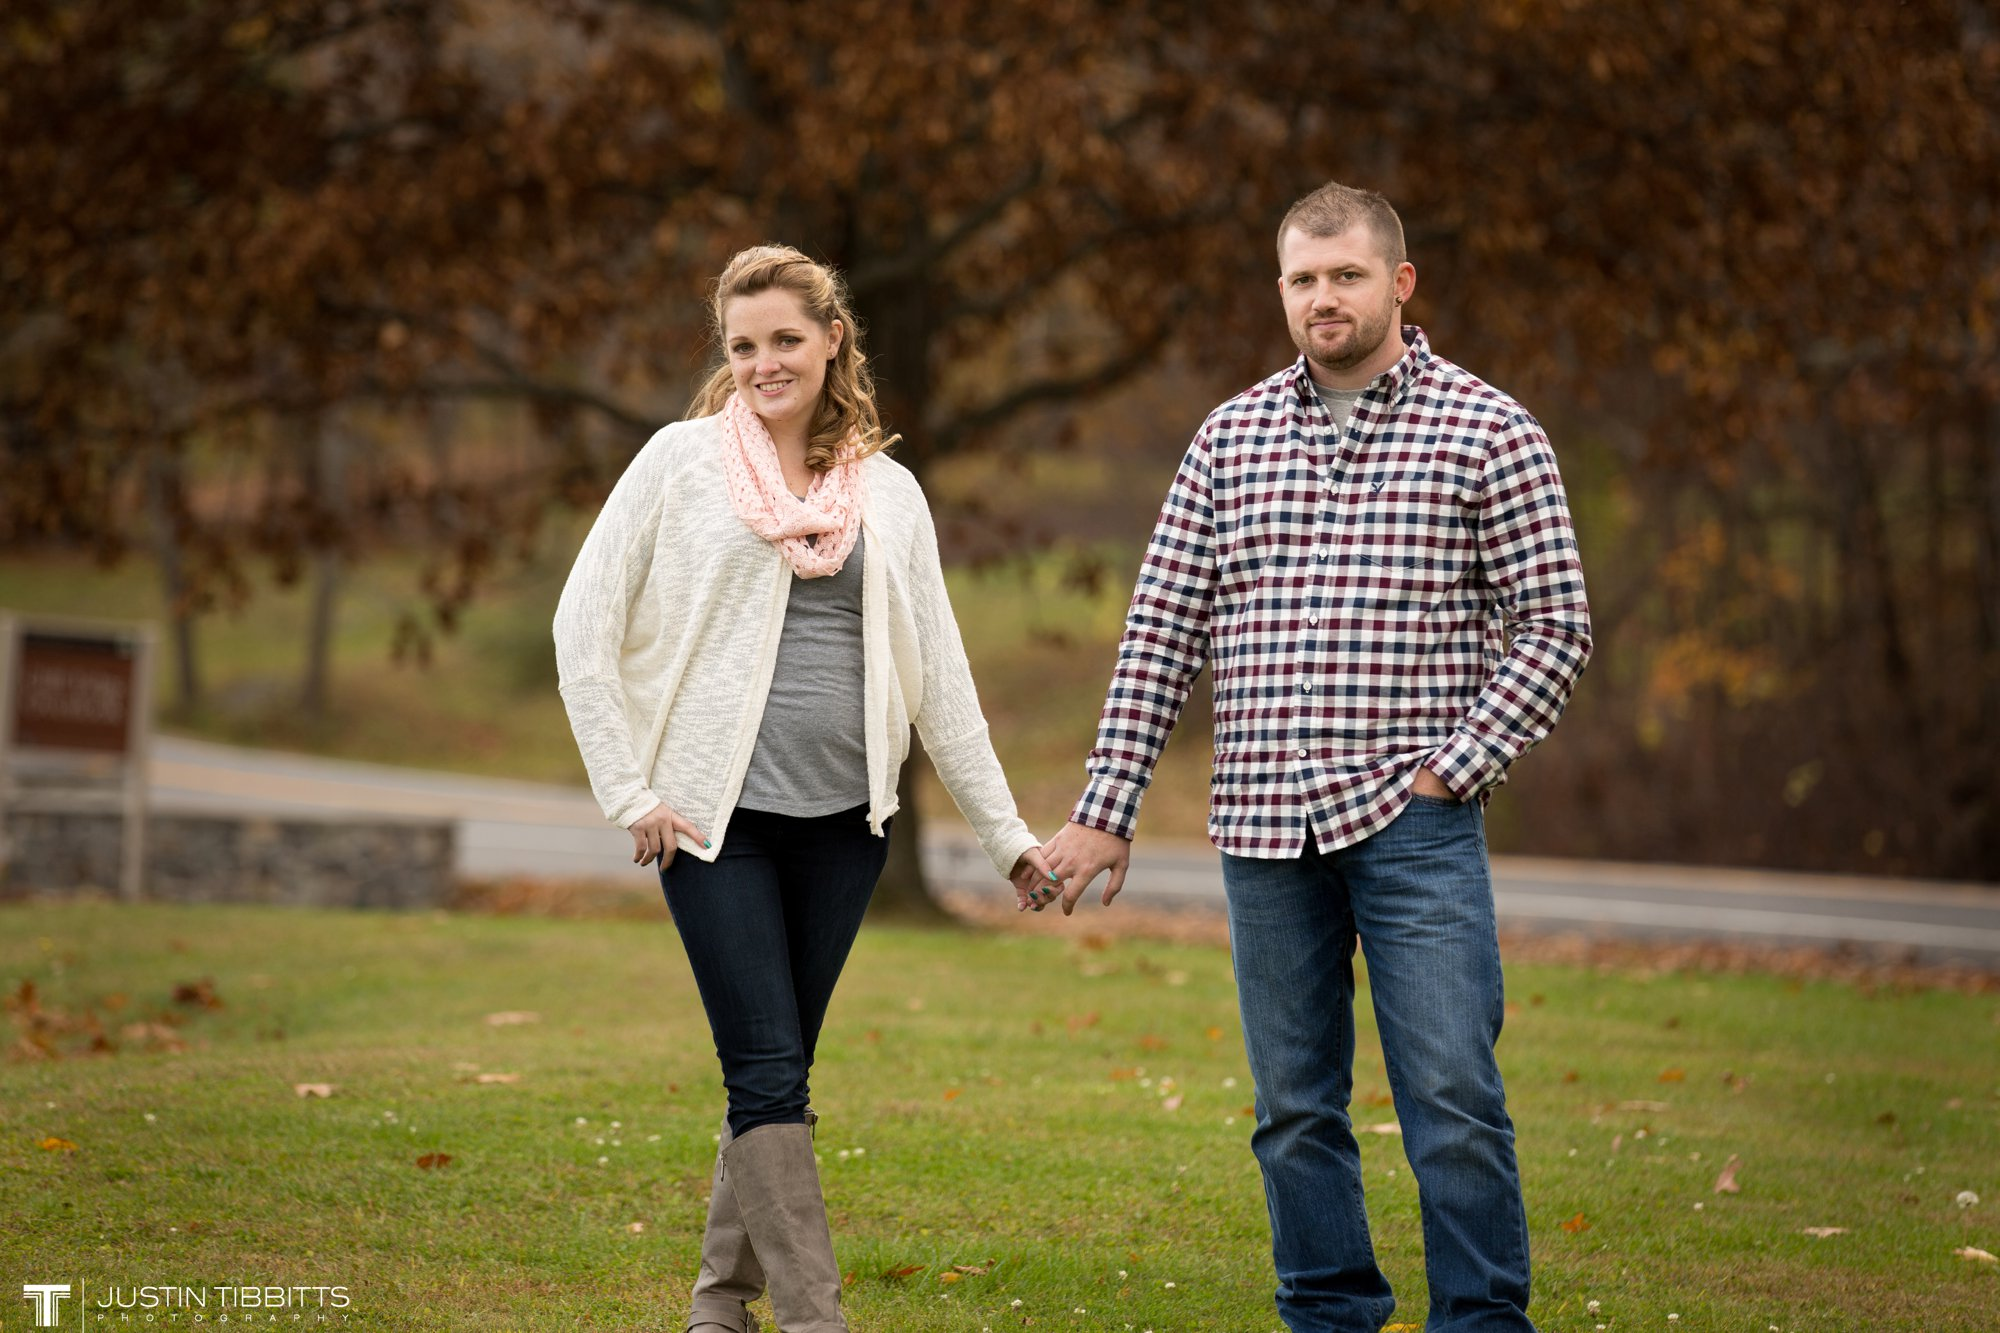 Justin Tibbitts Photography Ashlee and Steves Thatcher Park, New York Engagement Shoot-112